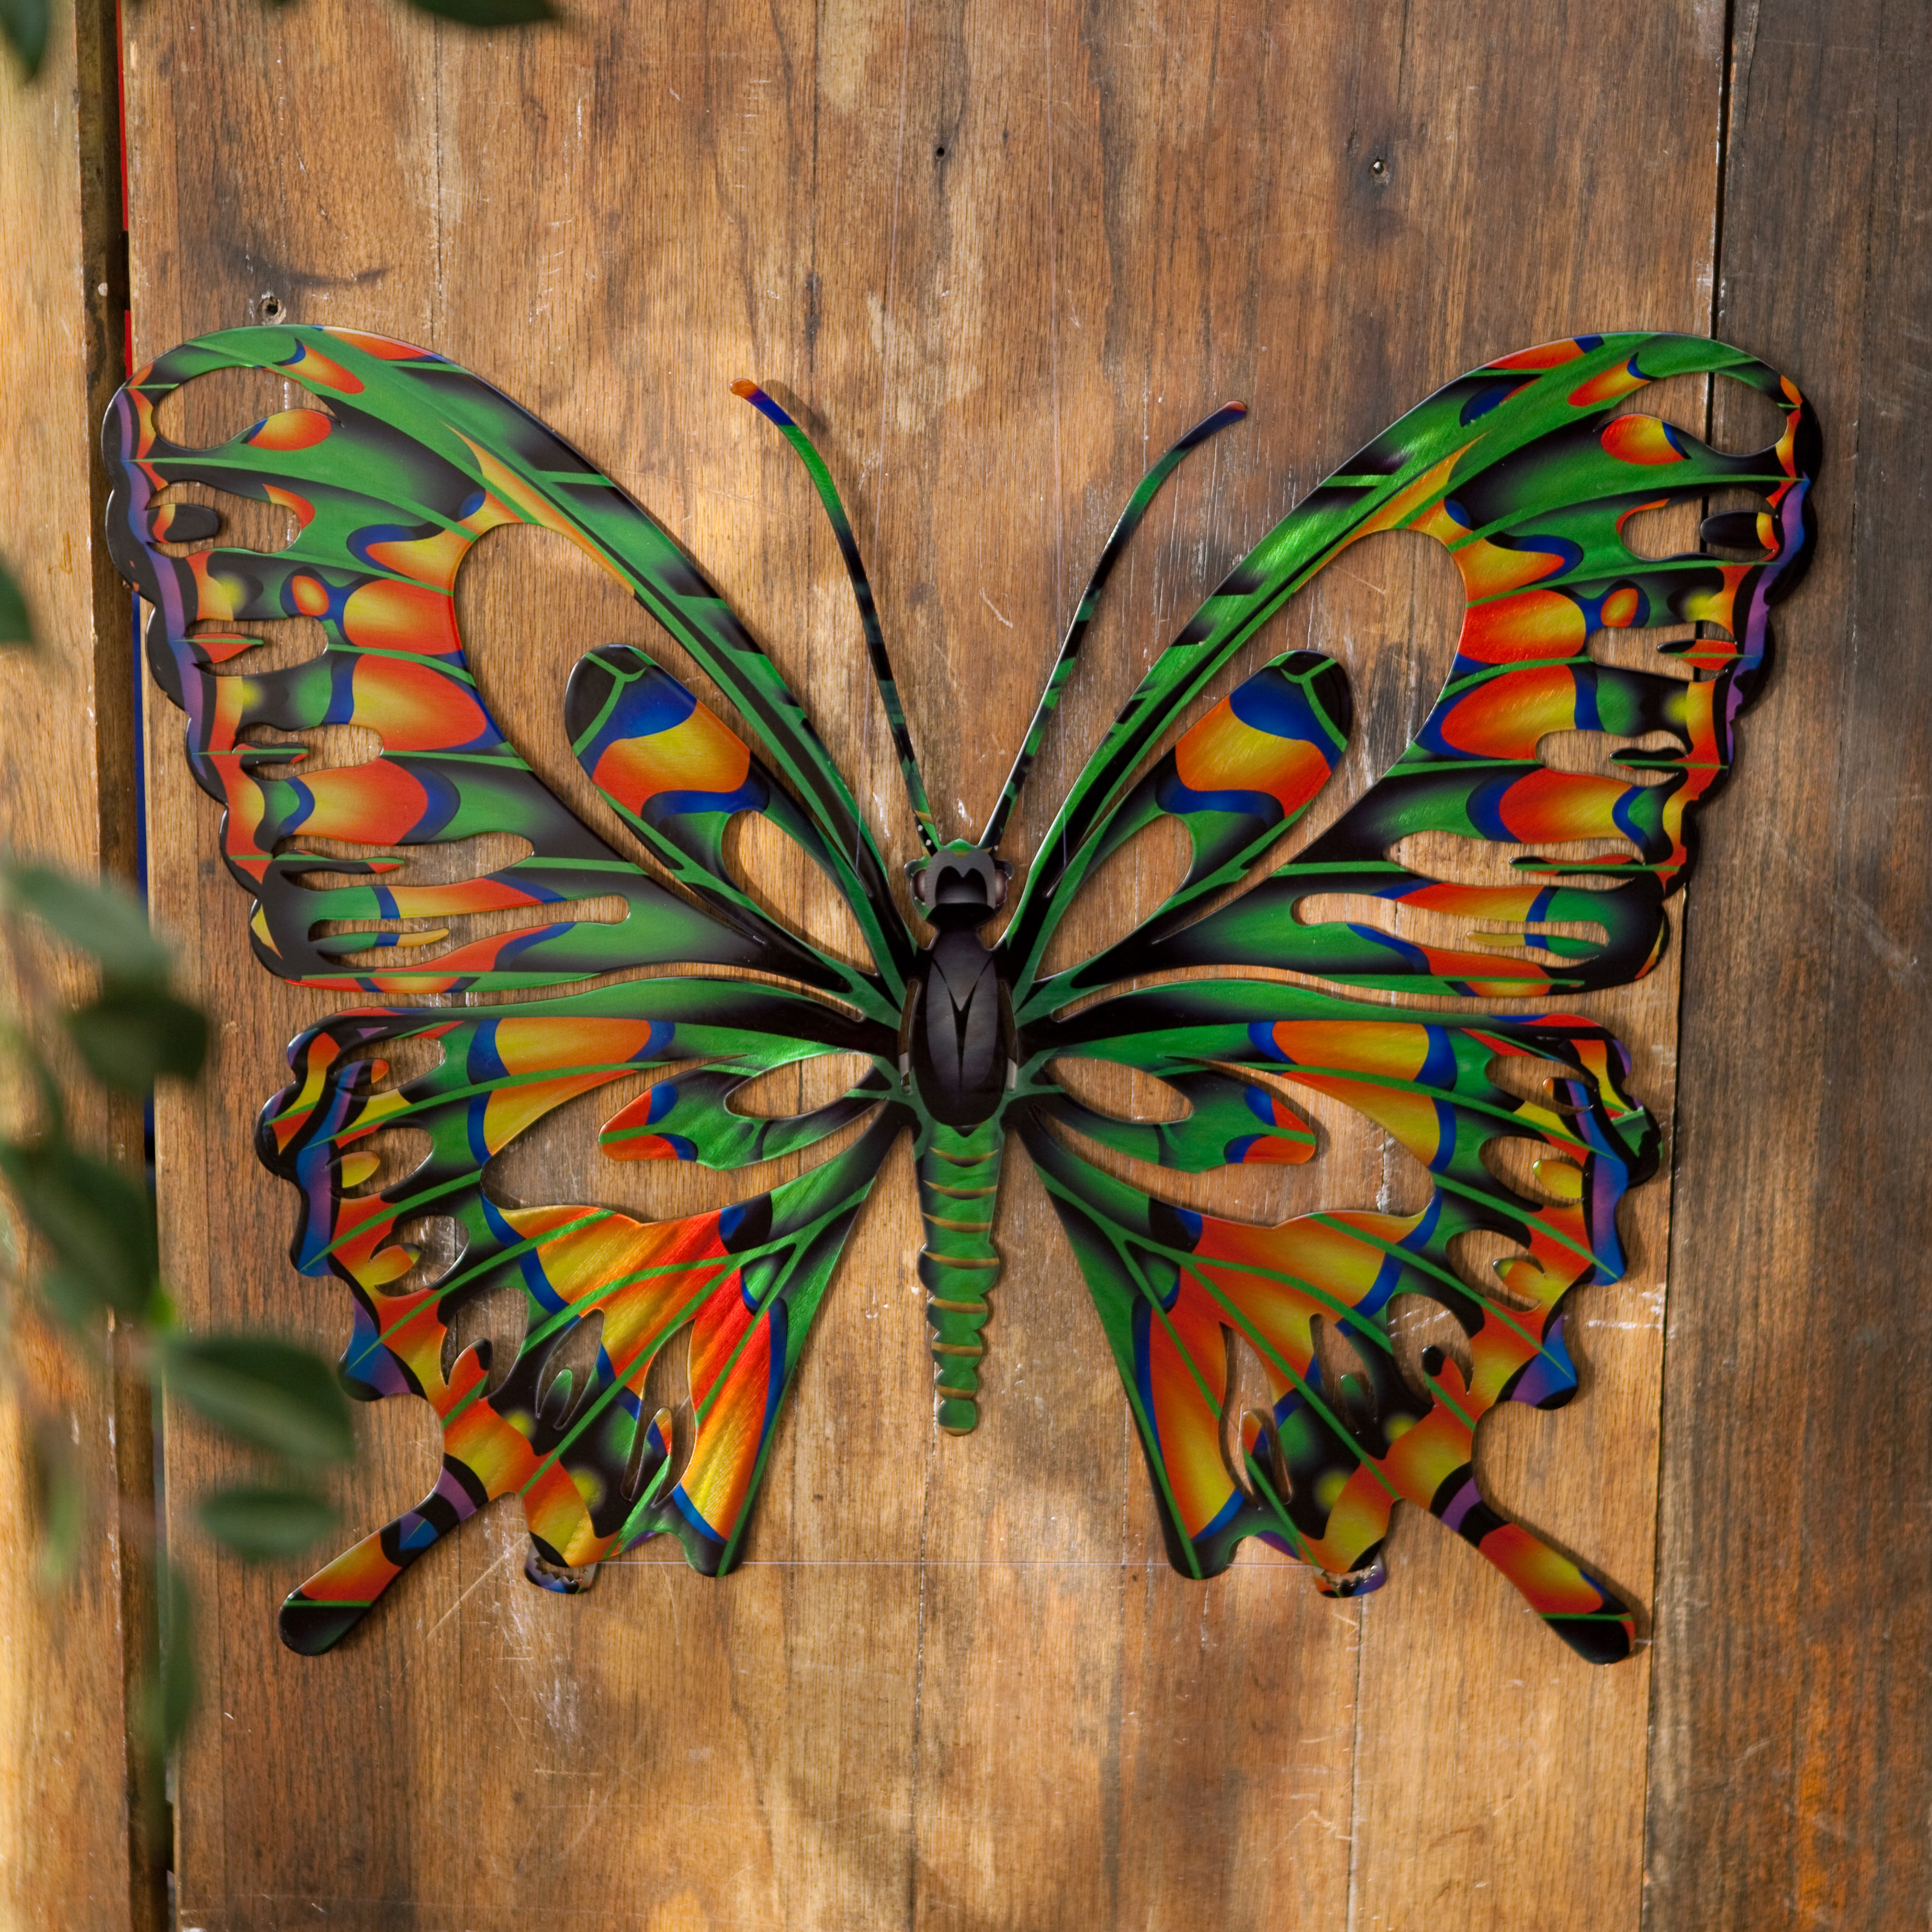 3D Butterfly Metal Outdoor Wall Art : metal exterior wall art - www.pureclipart.com